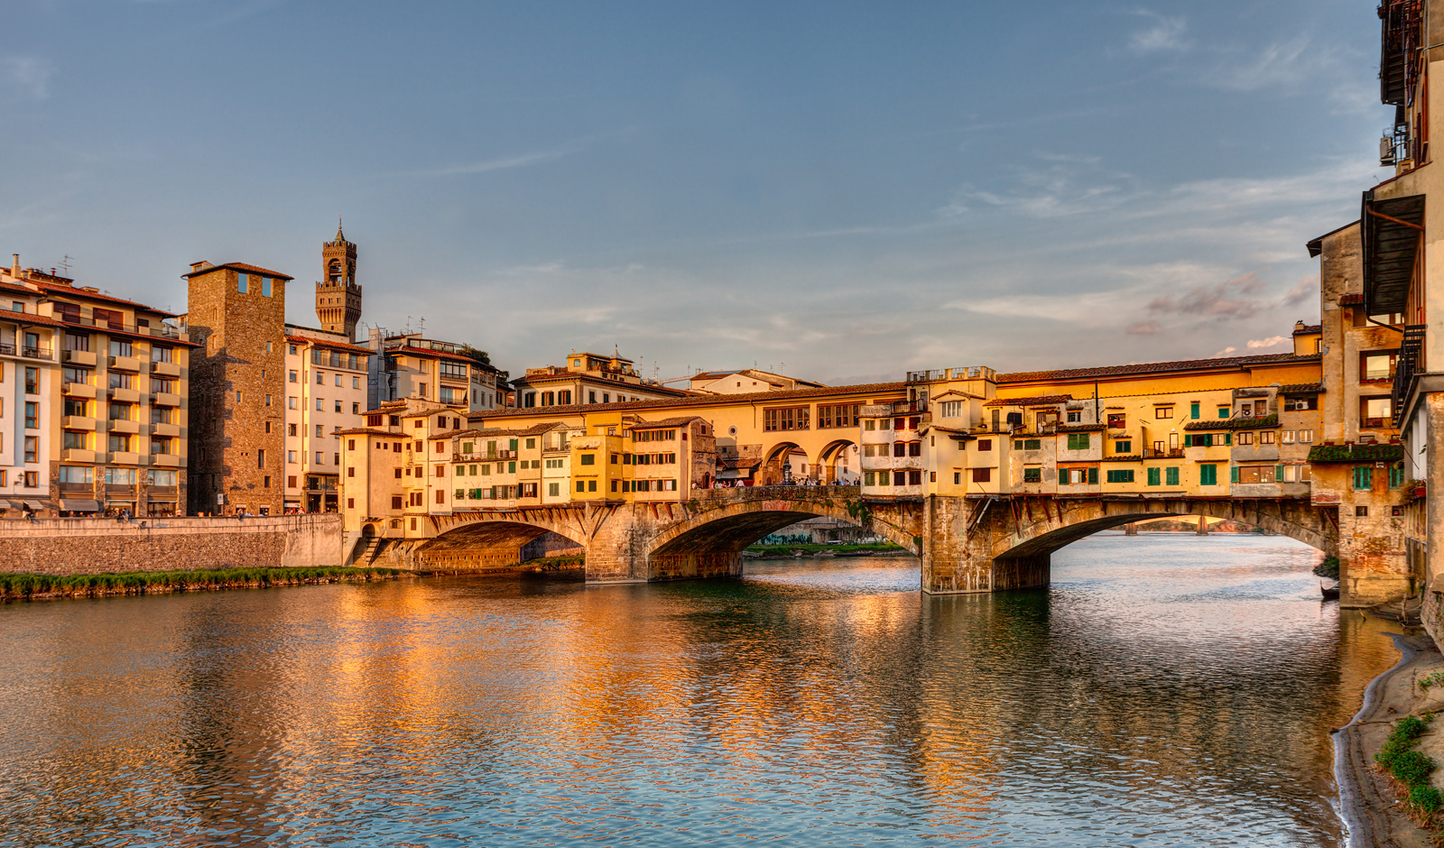 Watch the sunset over the iconic Ponte Vecchio